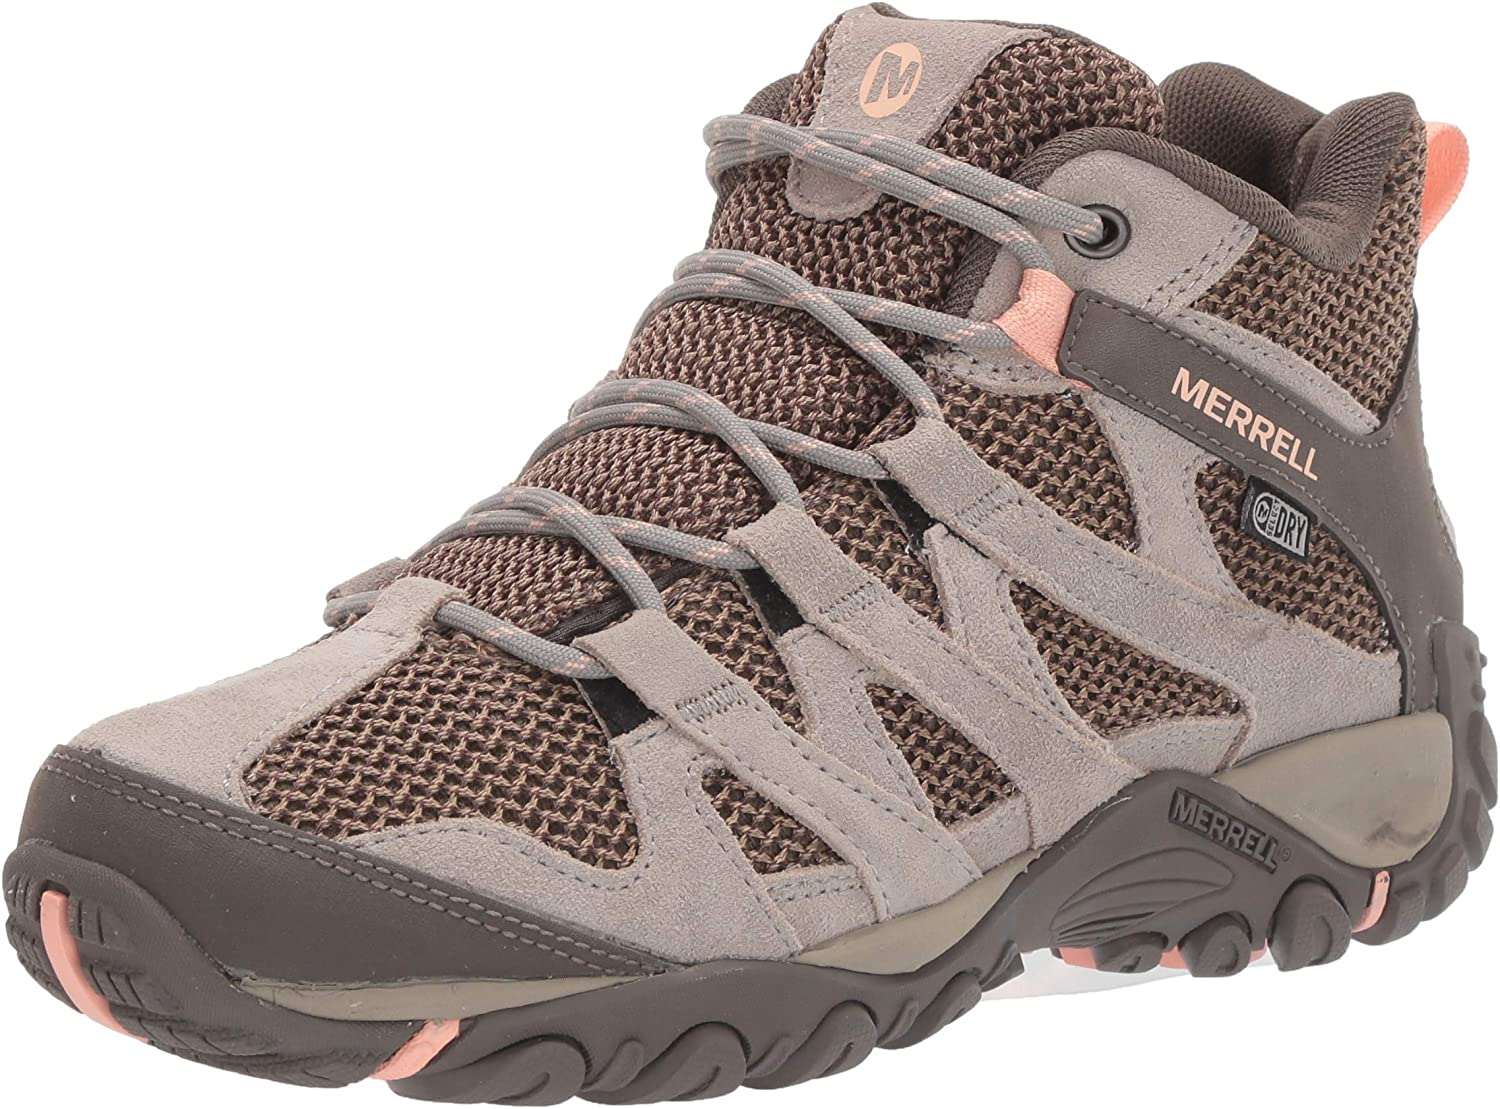 Merrell Women's J033026 Hiking Boot